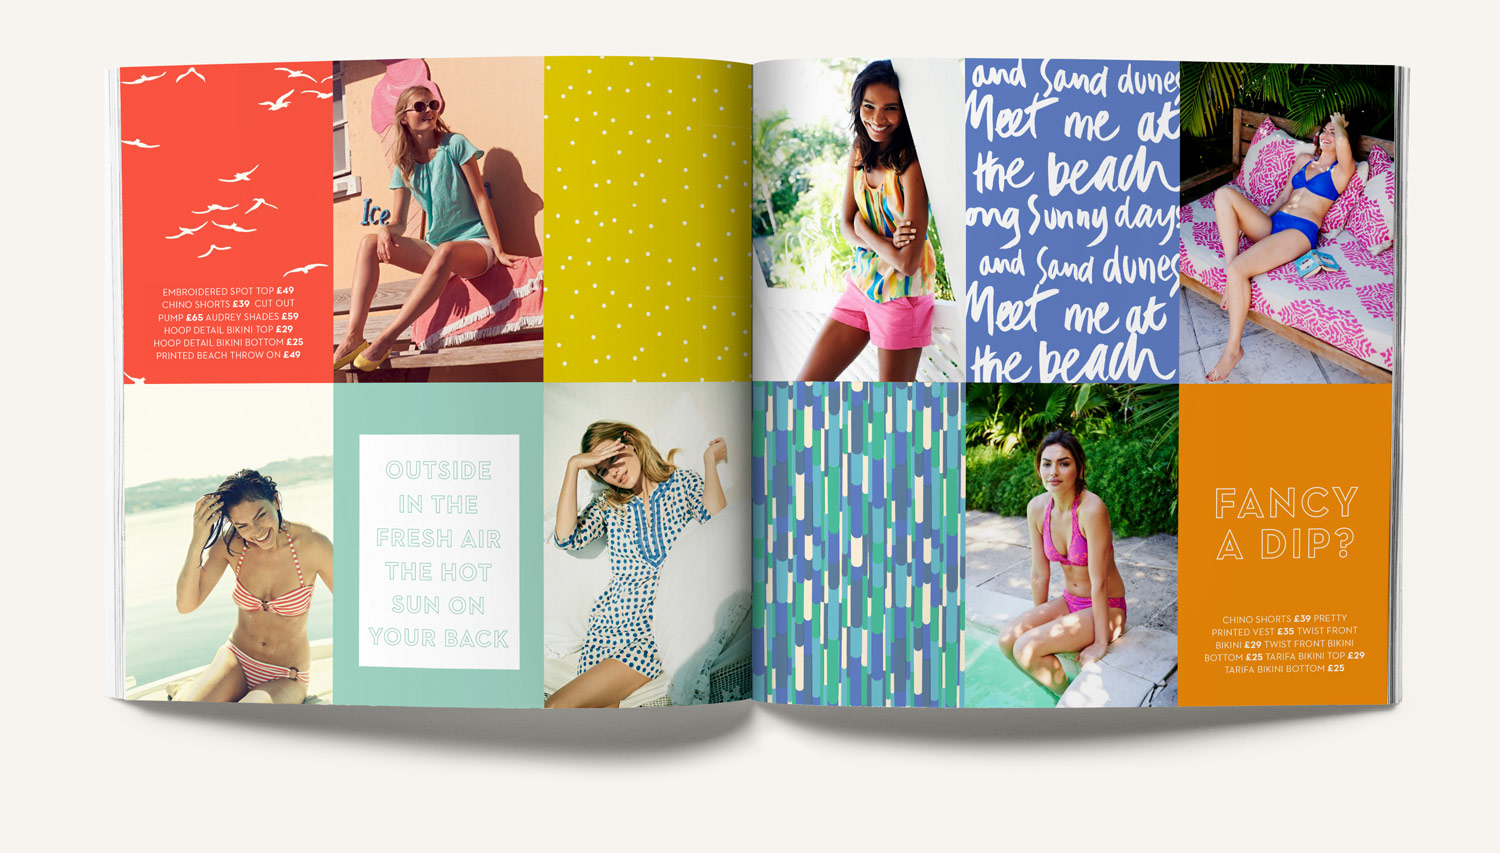 Boden swimwear collage grid with handdrawn type, typography, print, patterns and color. Design by Brittany Hurdle